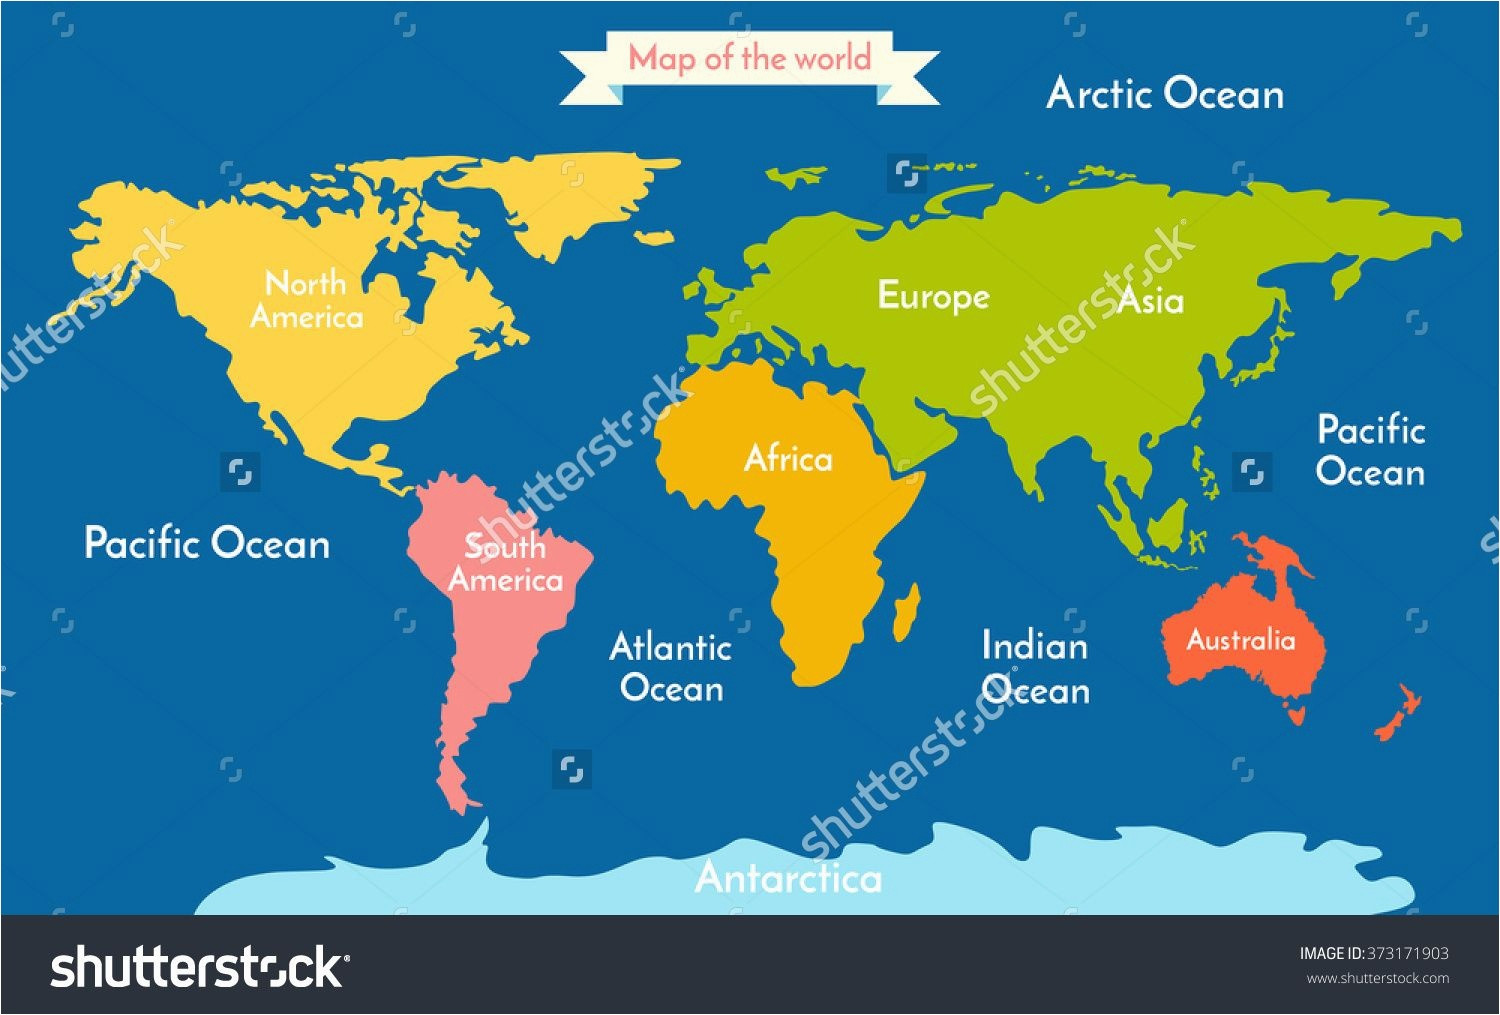 Printable Map 7 Continents Lovely 7 Continents And 5 Oceans In This World Telugu New World Europe Map